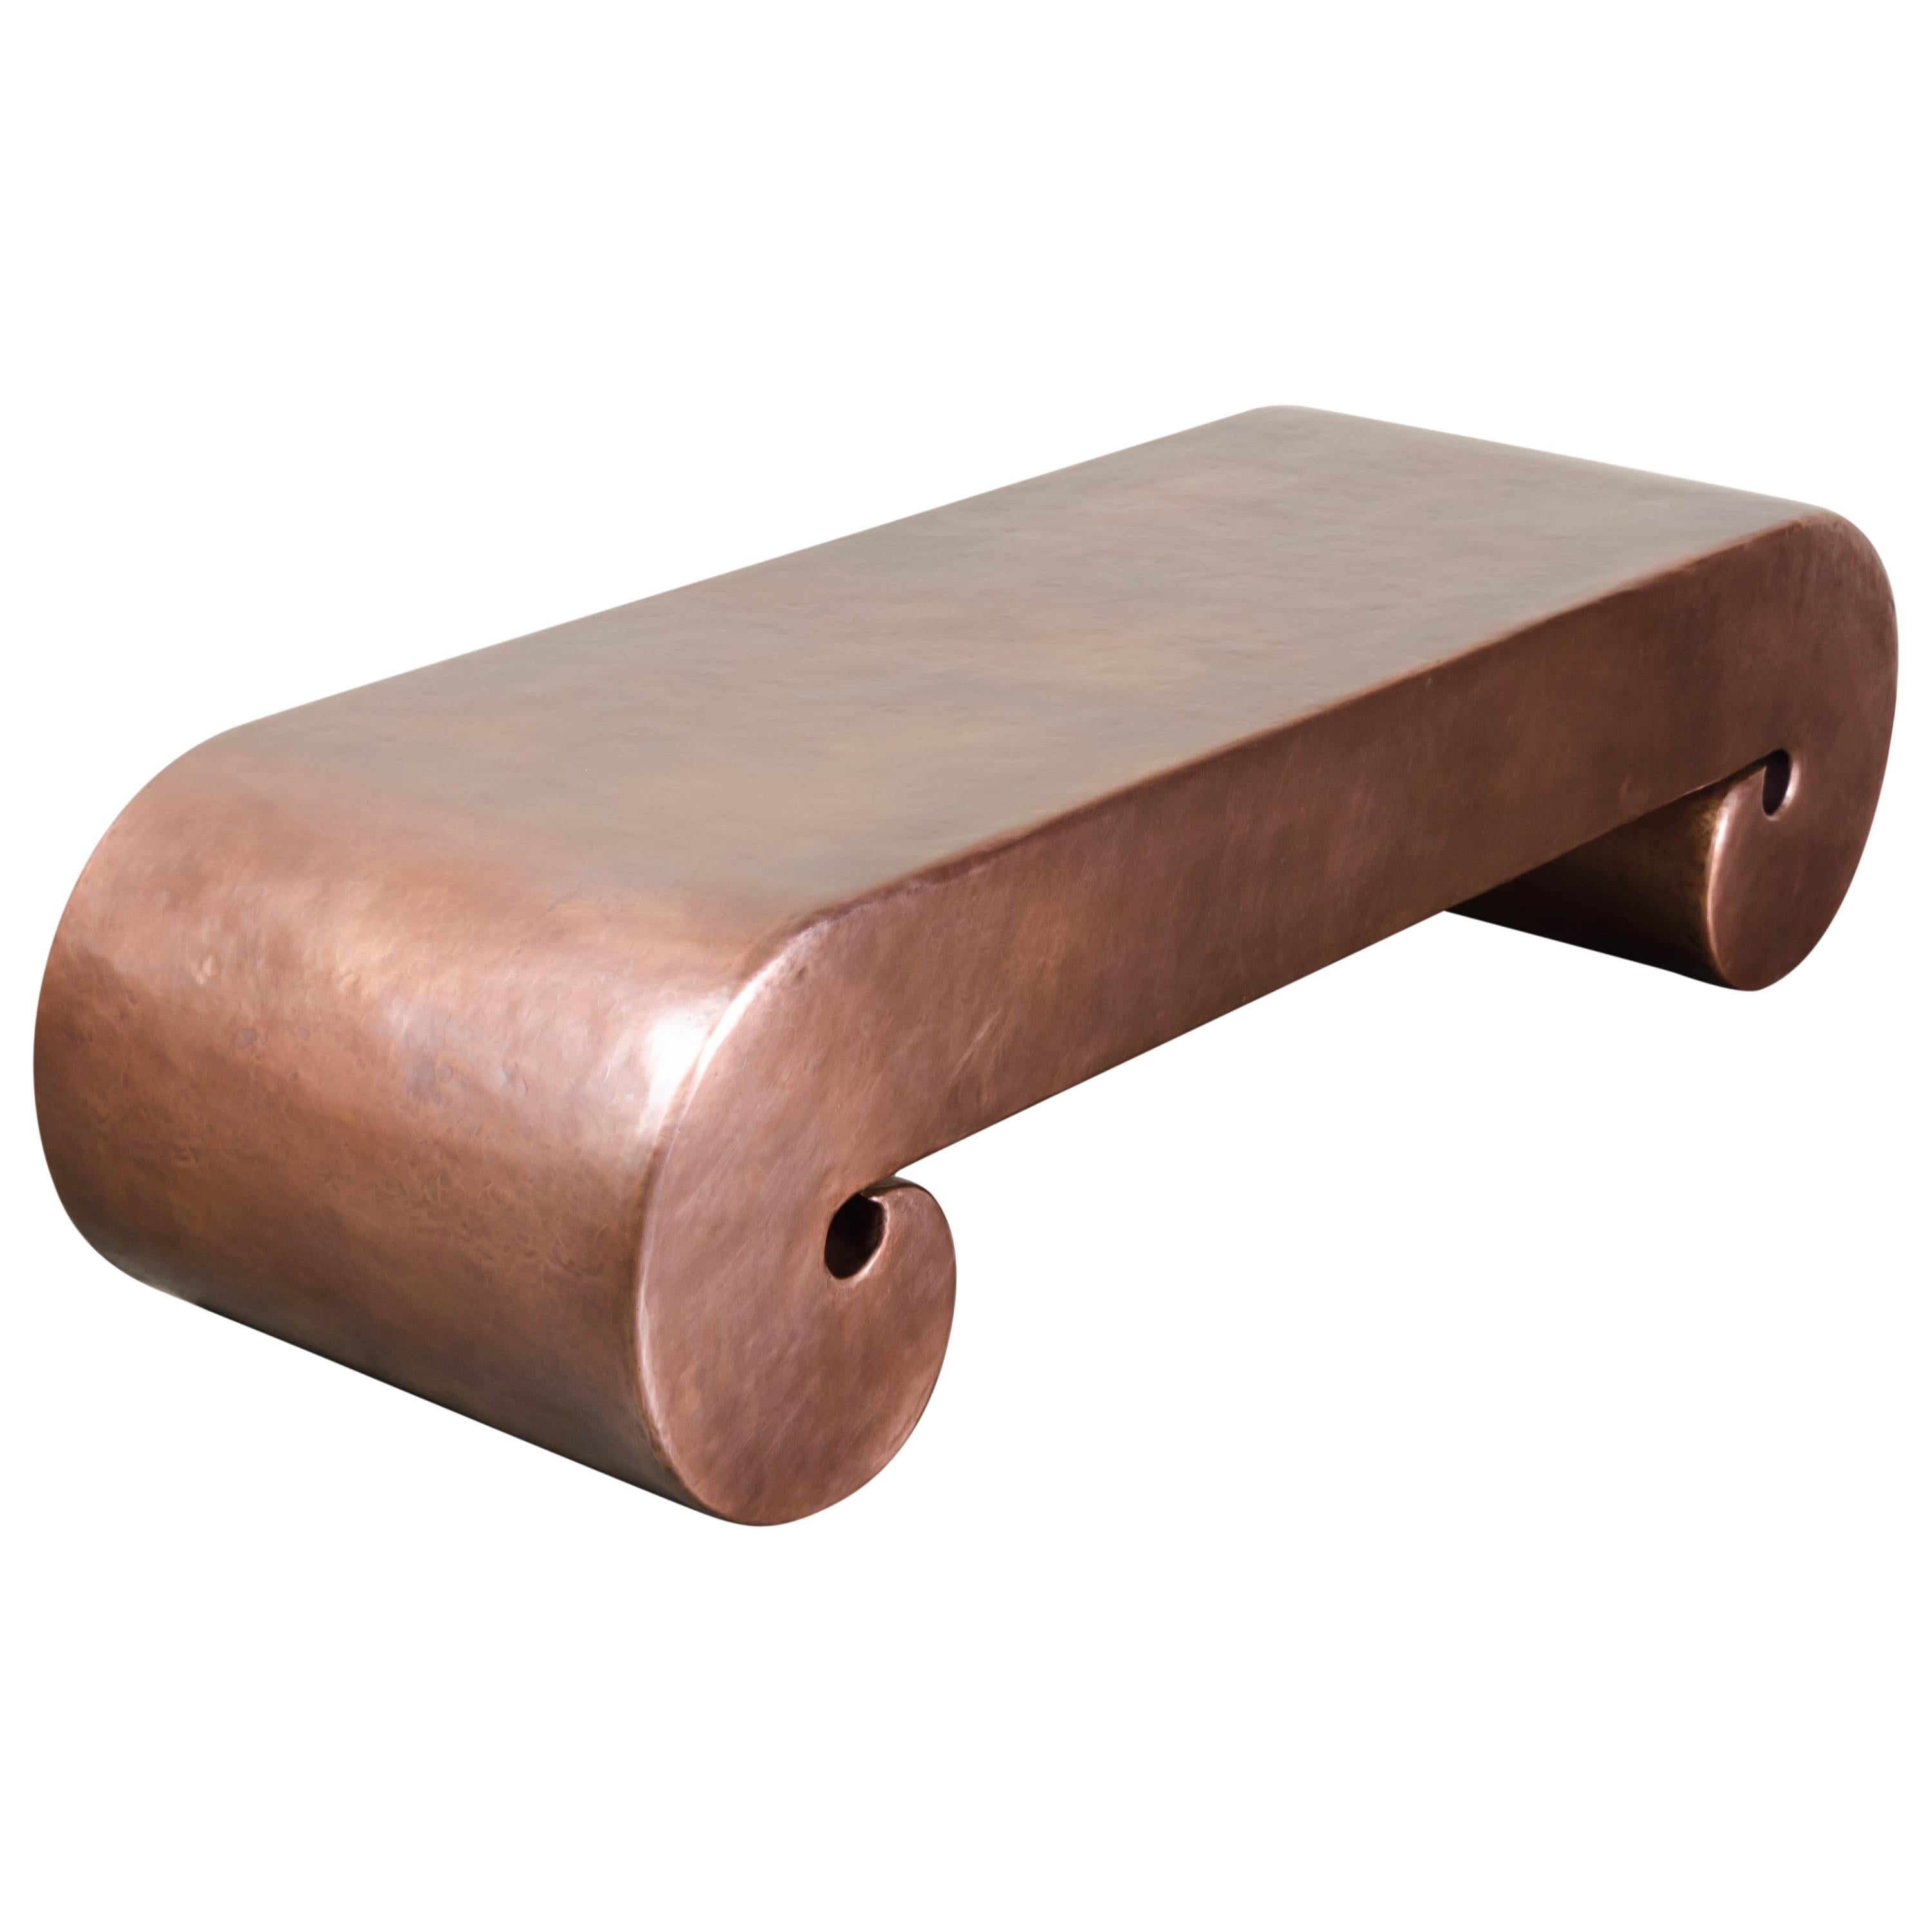 Low Scroll Design Table, Antique Copper by Robert Kuo, Hand Repousse